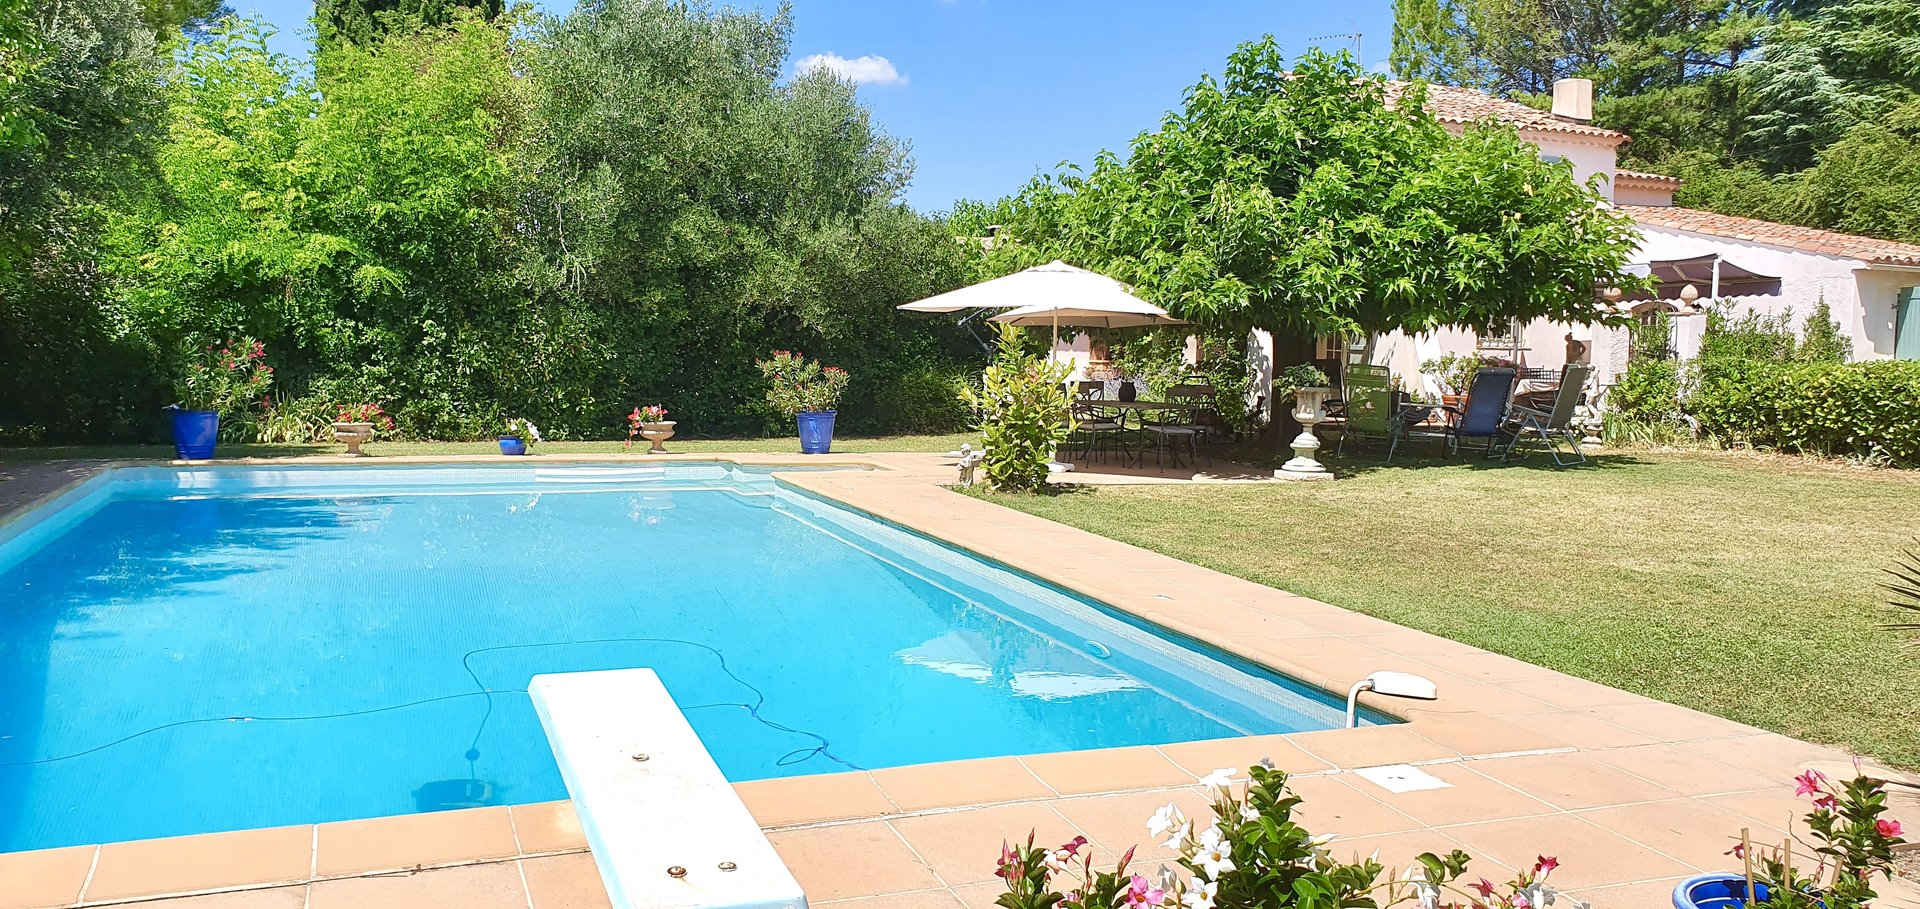 Walking distance to the old village of Villecroze, charming villa!